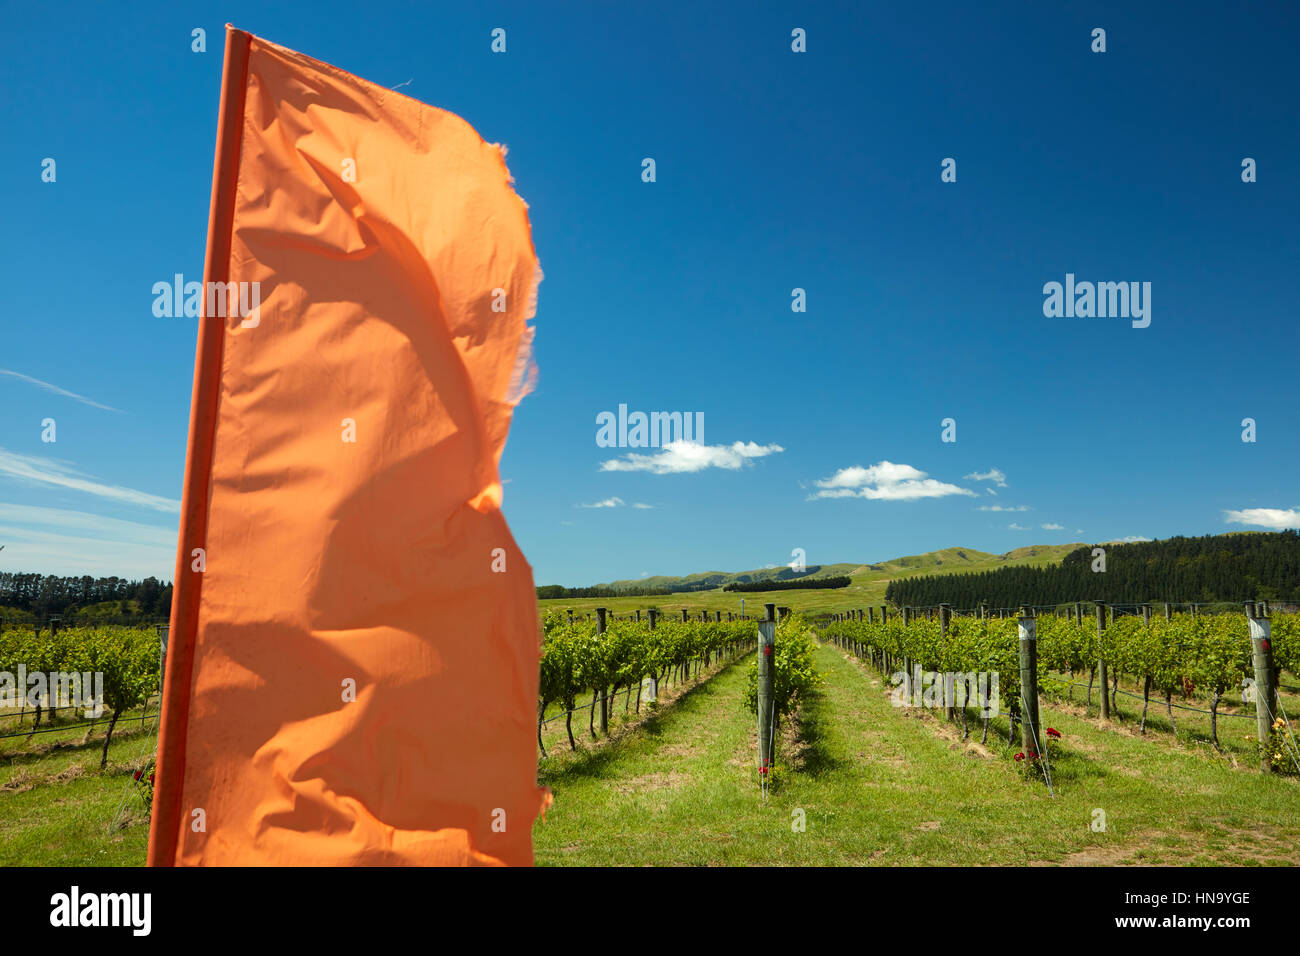 Luna Estate Vineyard, Martinborough, Wairarapa, Lower North Island, New Zealand - Stock Image